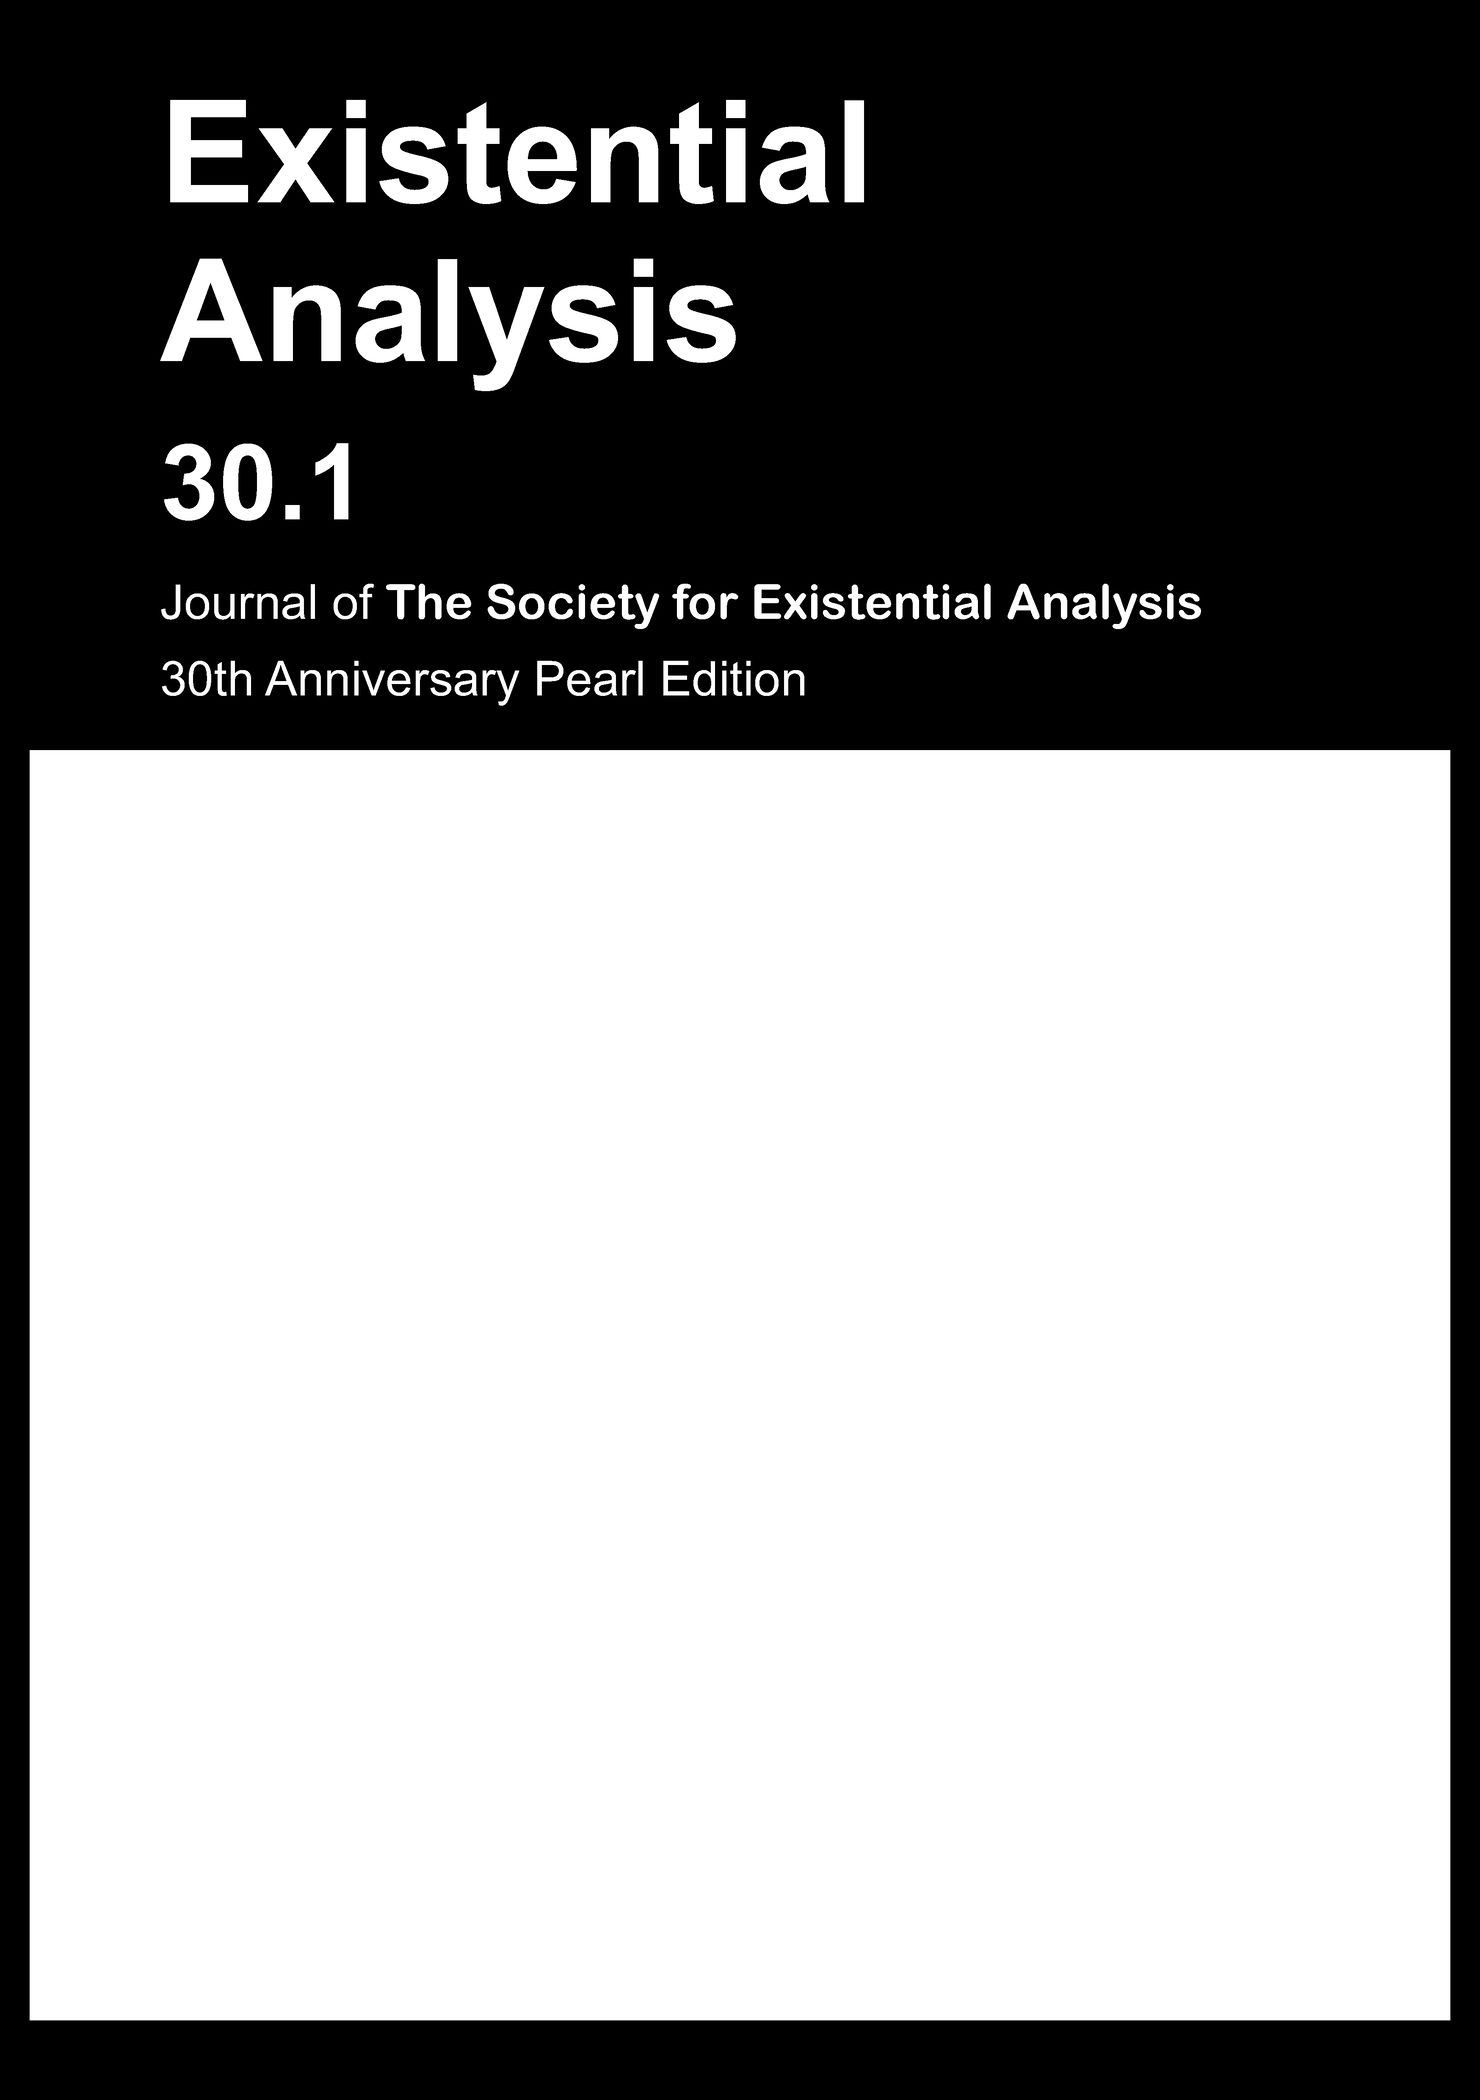 Existential Analysis 7.2 cover